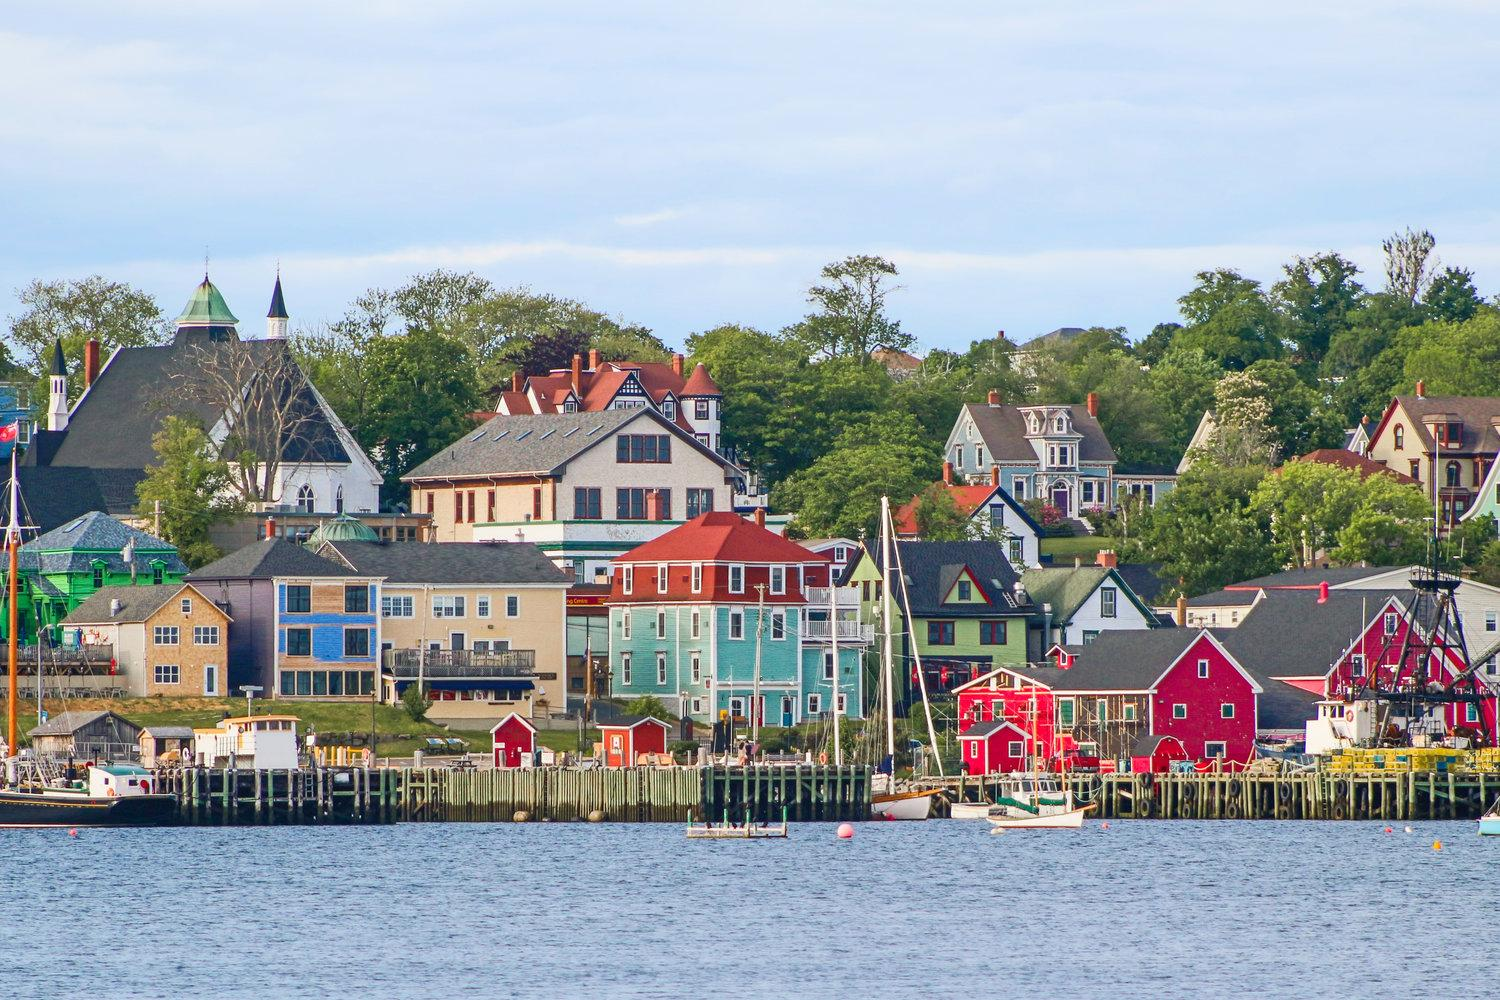 Explore old-town Lunenburg, a UNESCO preserved colonial settlement